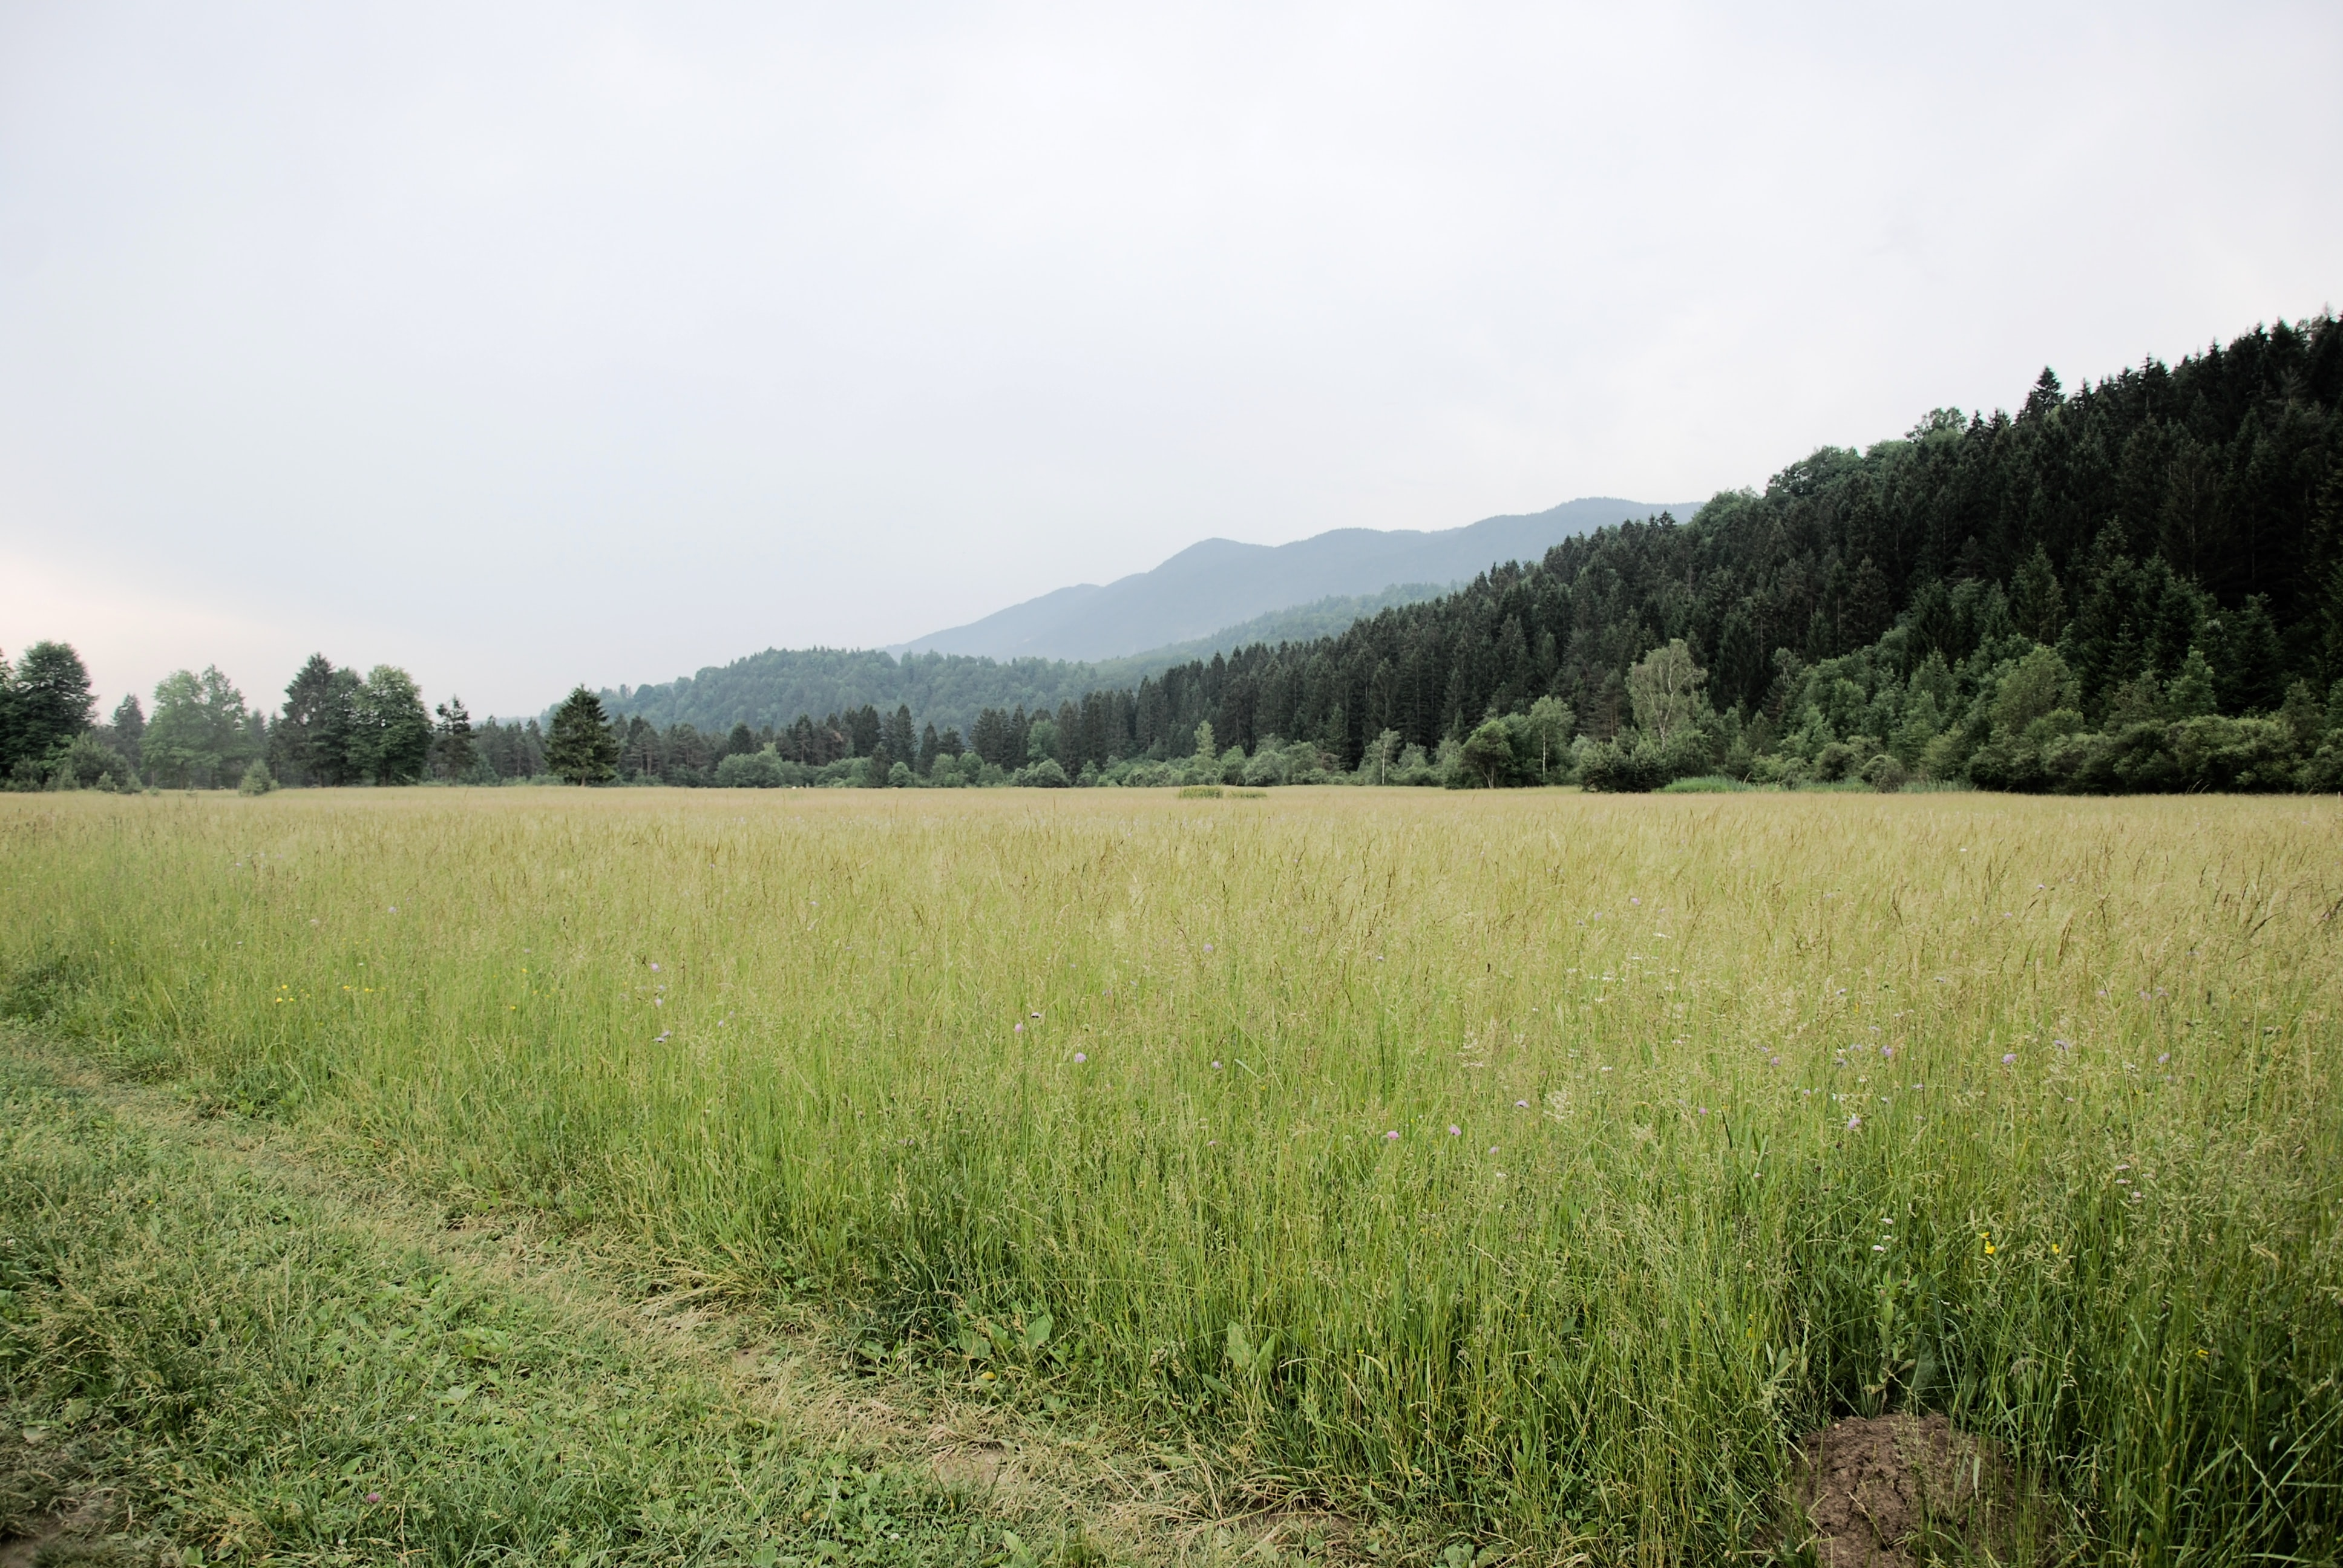 field of green grasses within mountain range during daytime